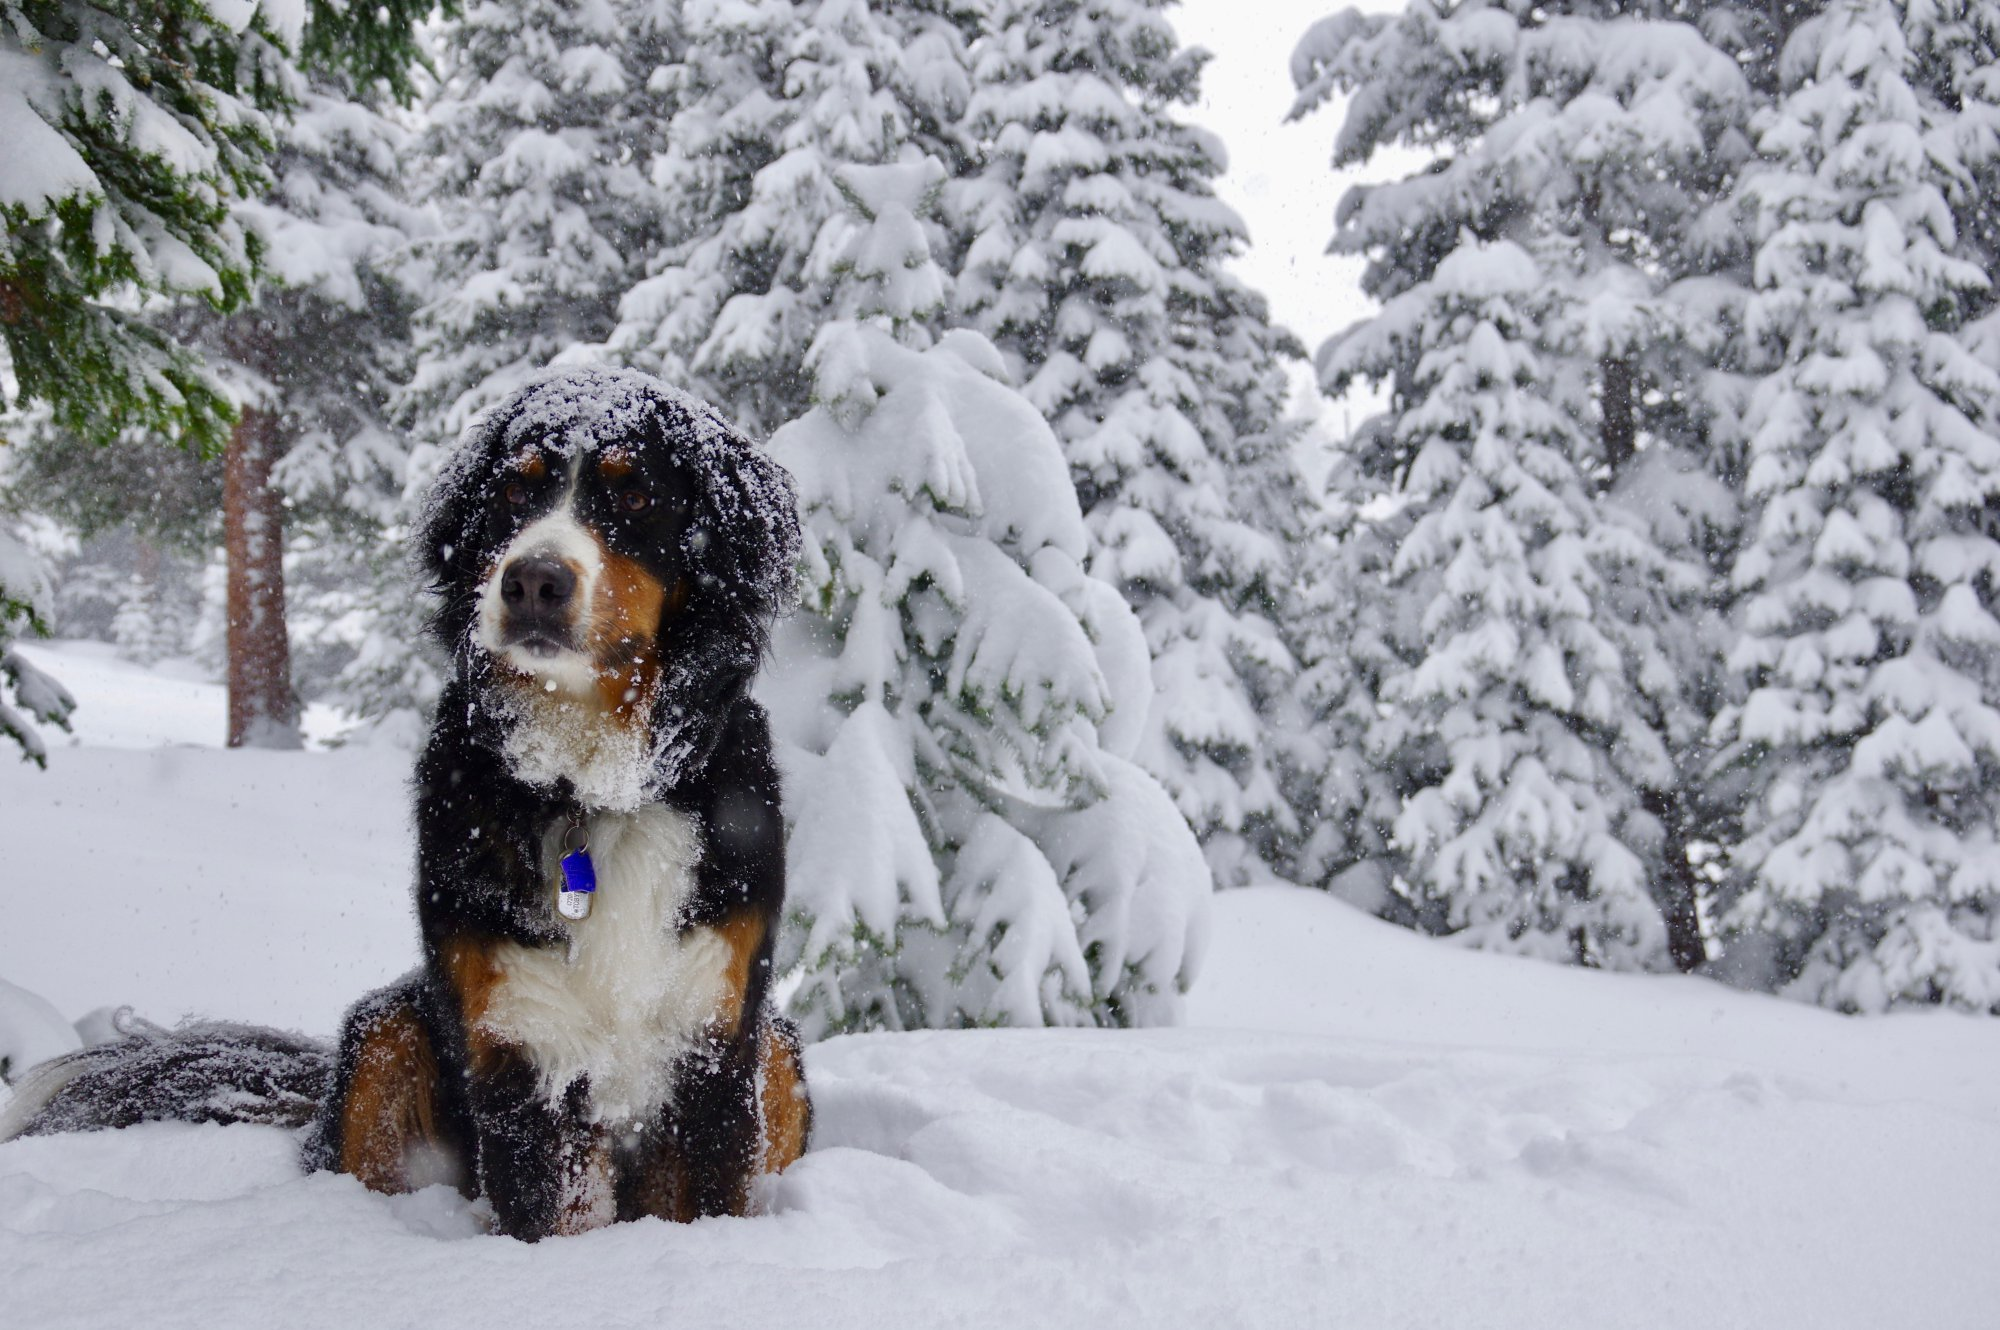 Snow photos: Late spring storm dumps snow in foothills, mountains ...